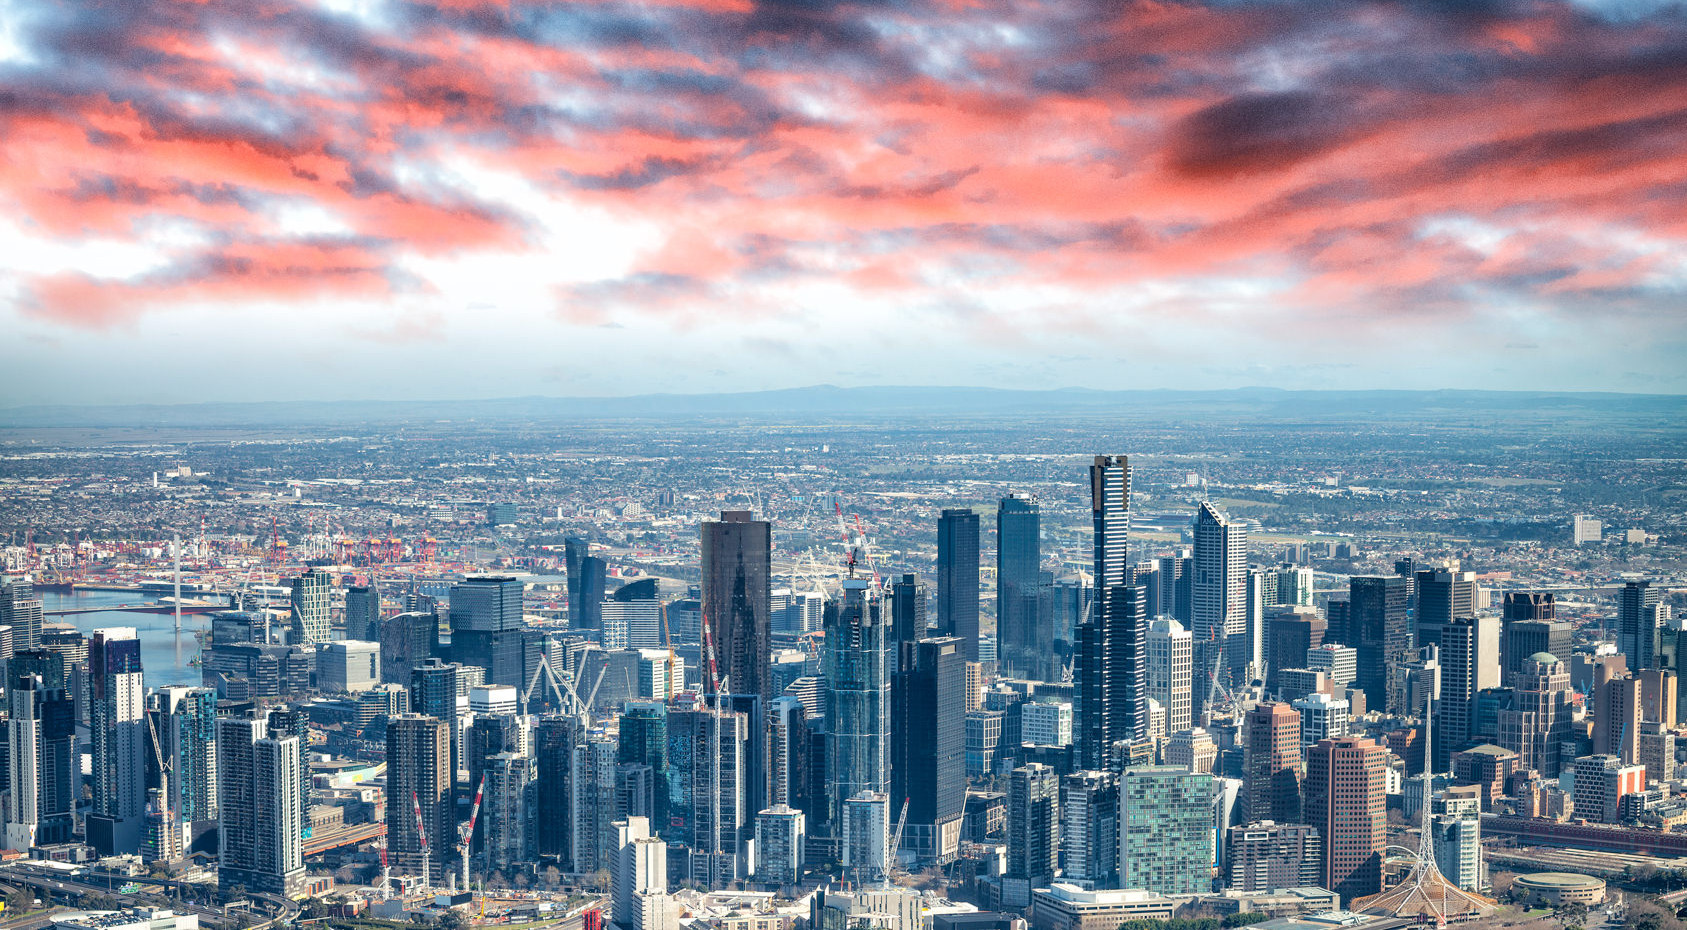 Aerial view of Melbourne skyline at sunset